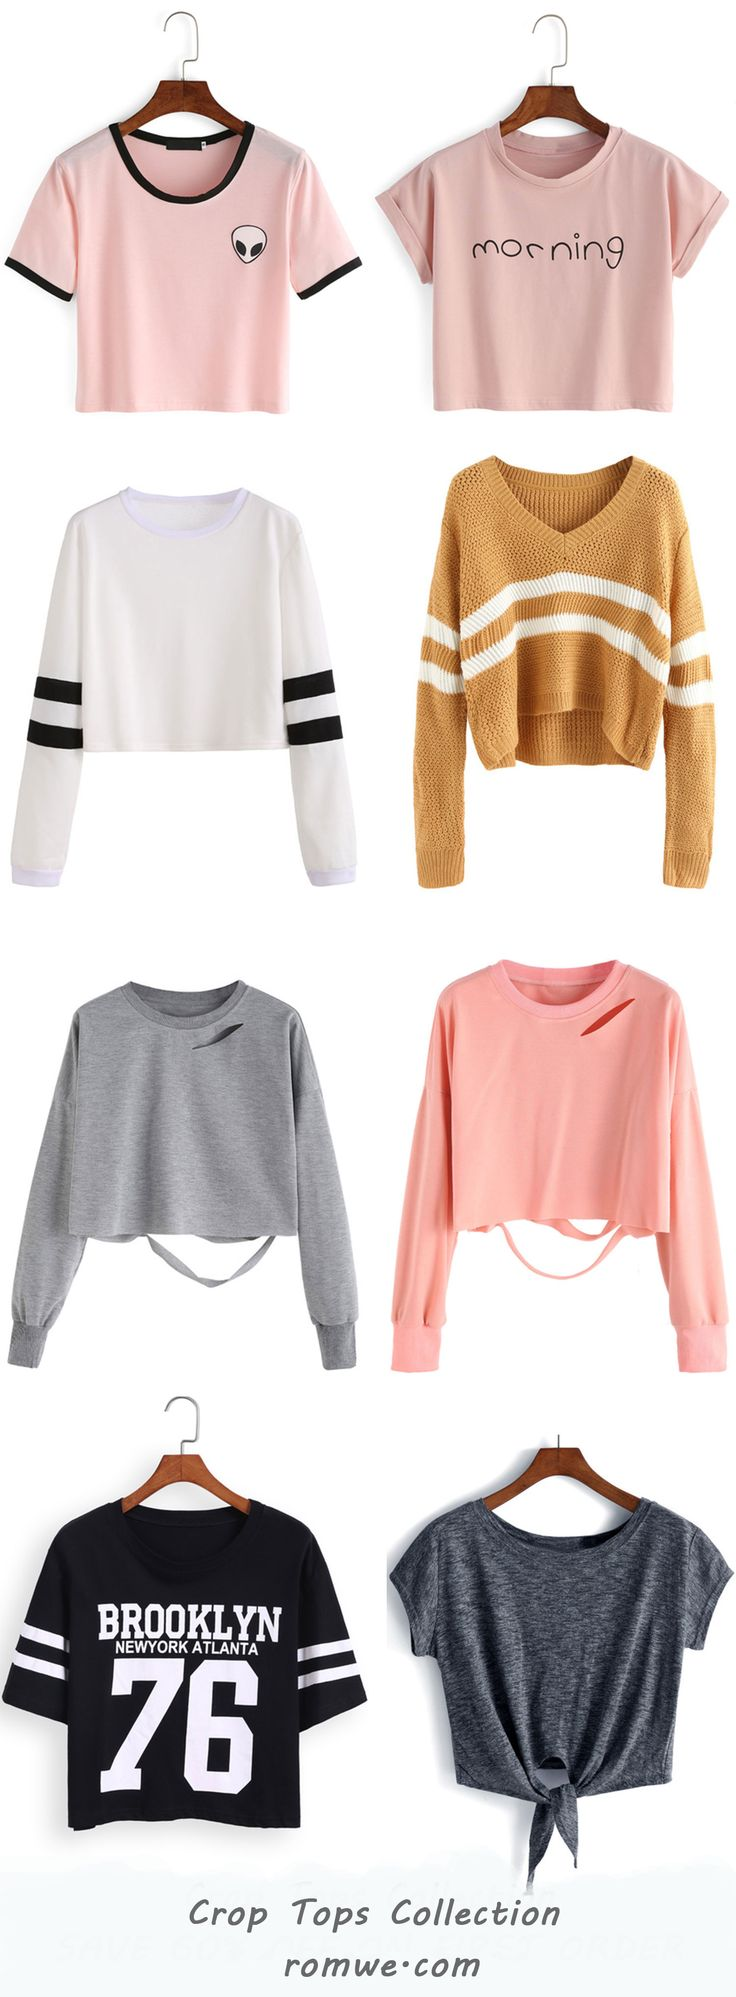 Crop Tops Collection - romwe.com los top es una buena opcion q deberia haber en tu close poq combina con todo y te da on tocq de angelical , linda ese lado tierno q a los hombres le gusta y ese lado s (Diy Ropa)